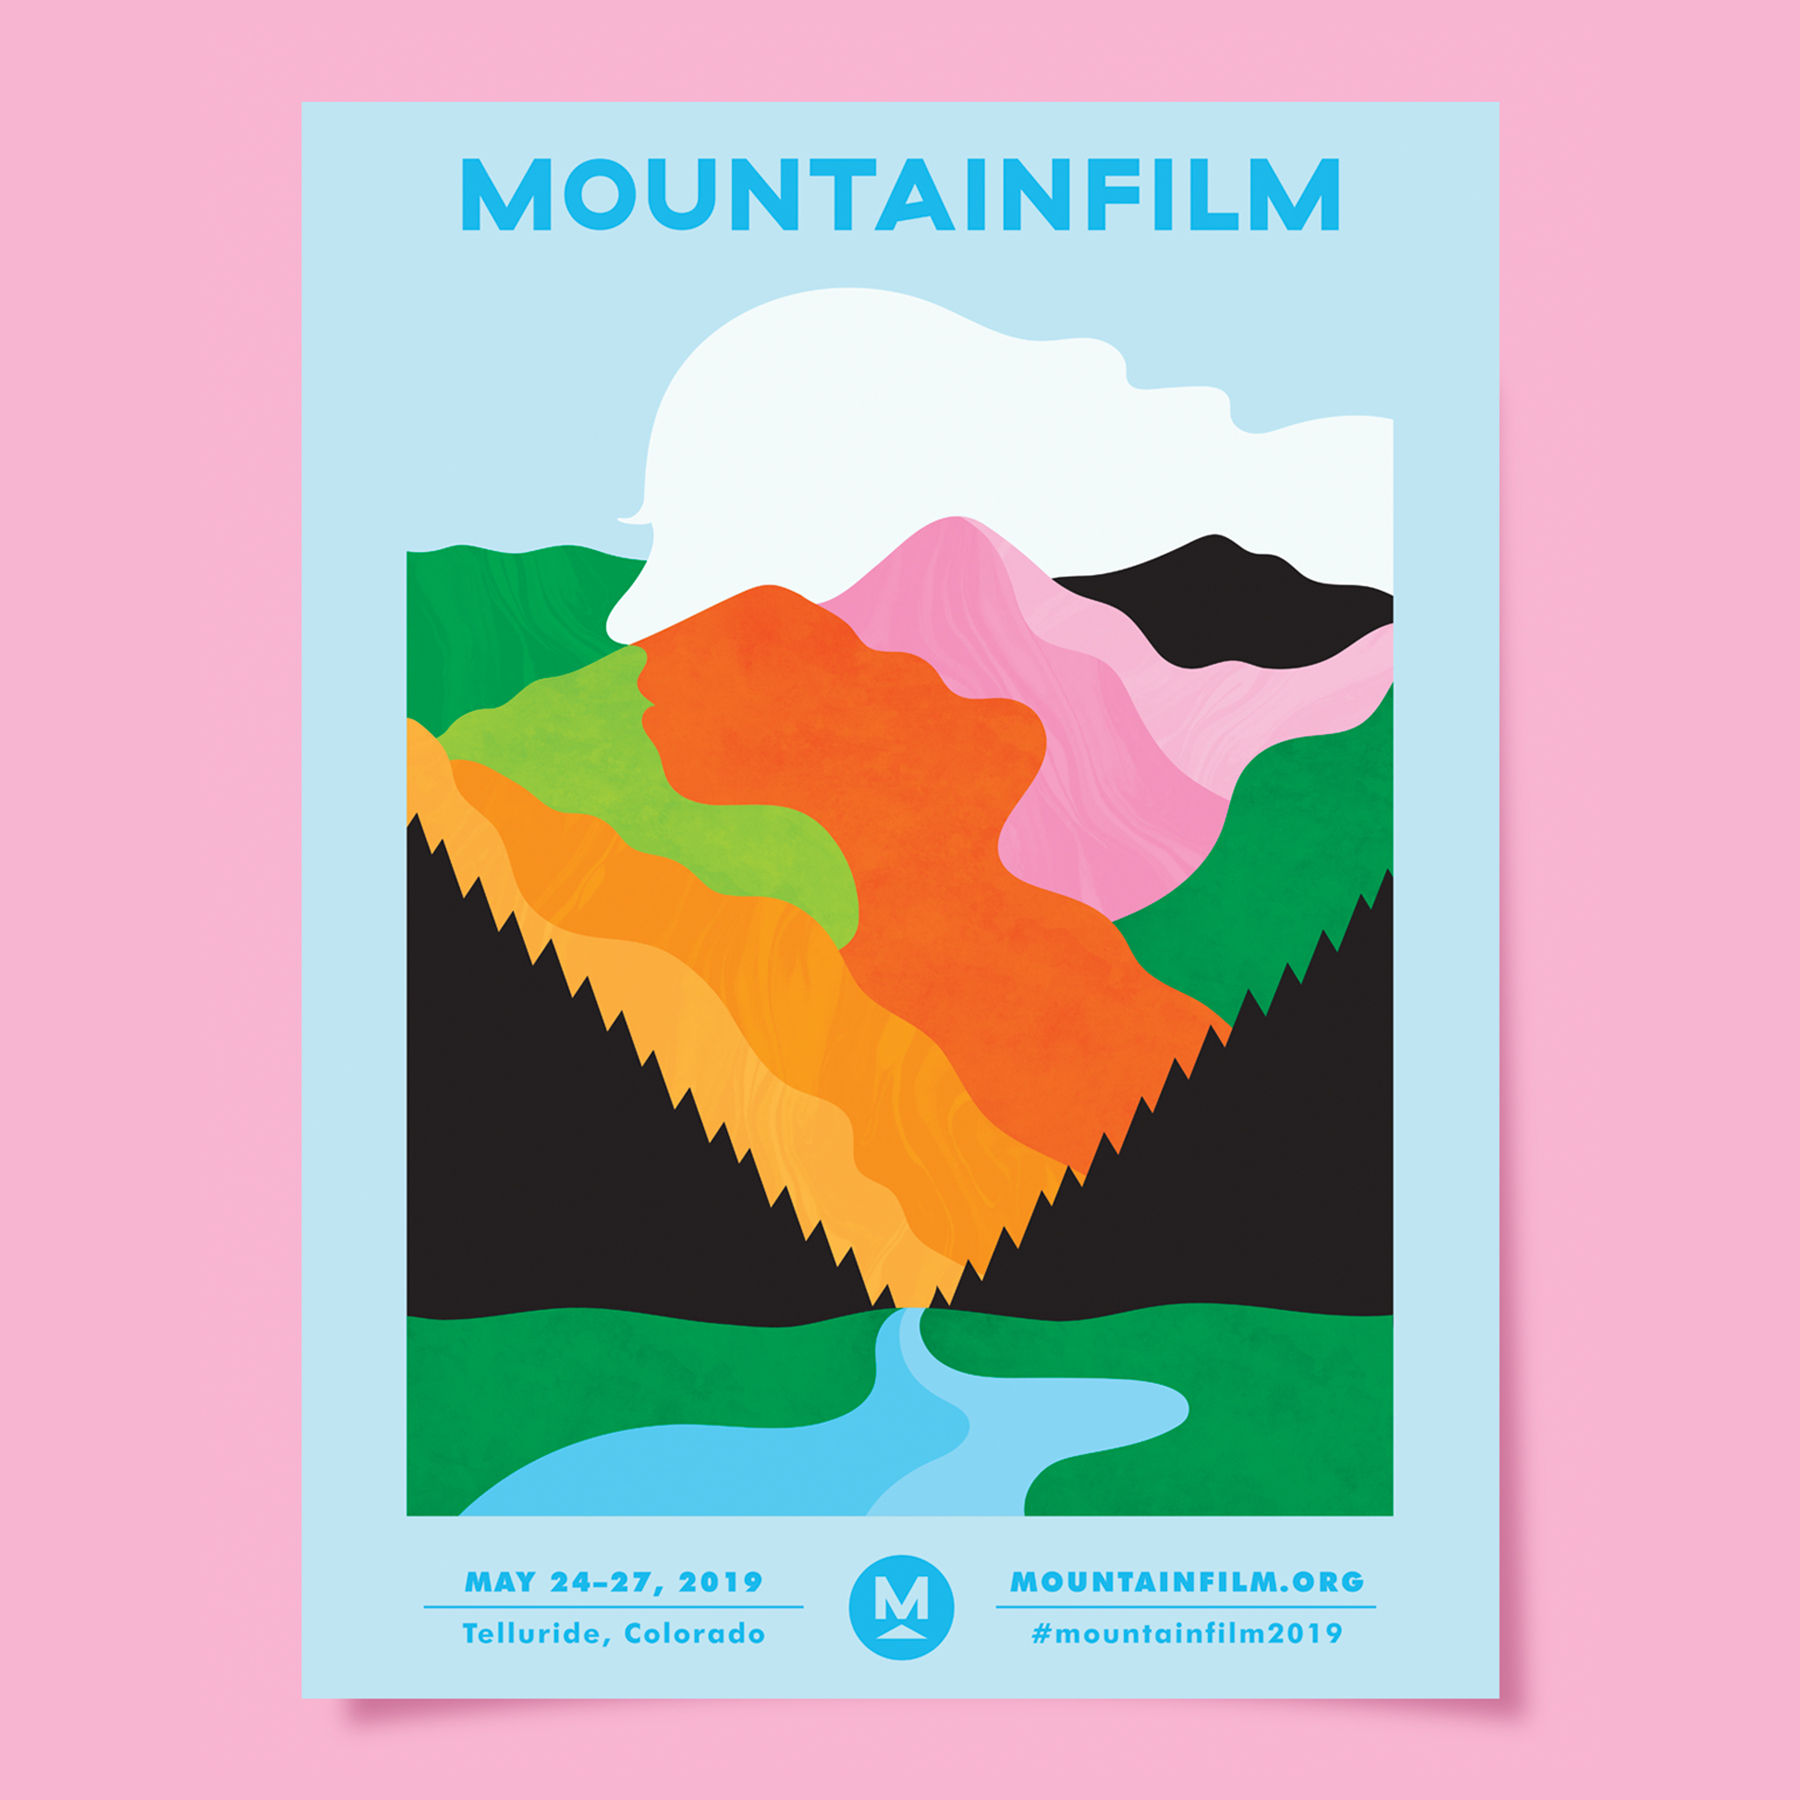 Mountainfilm